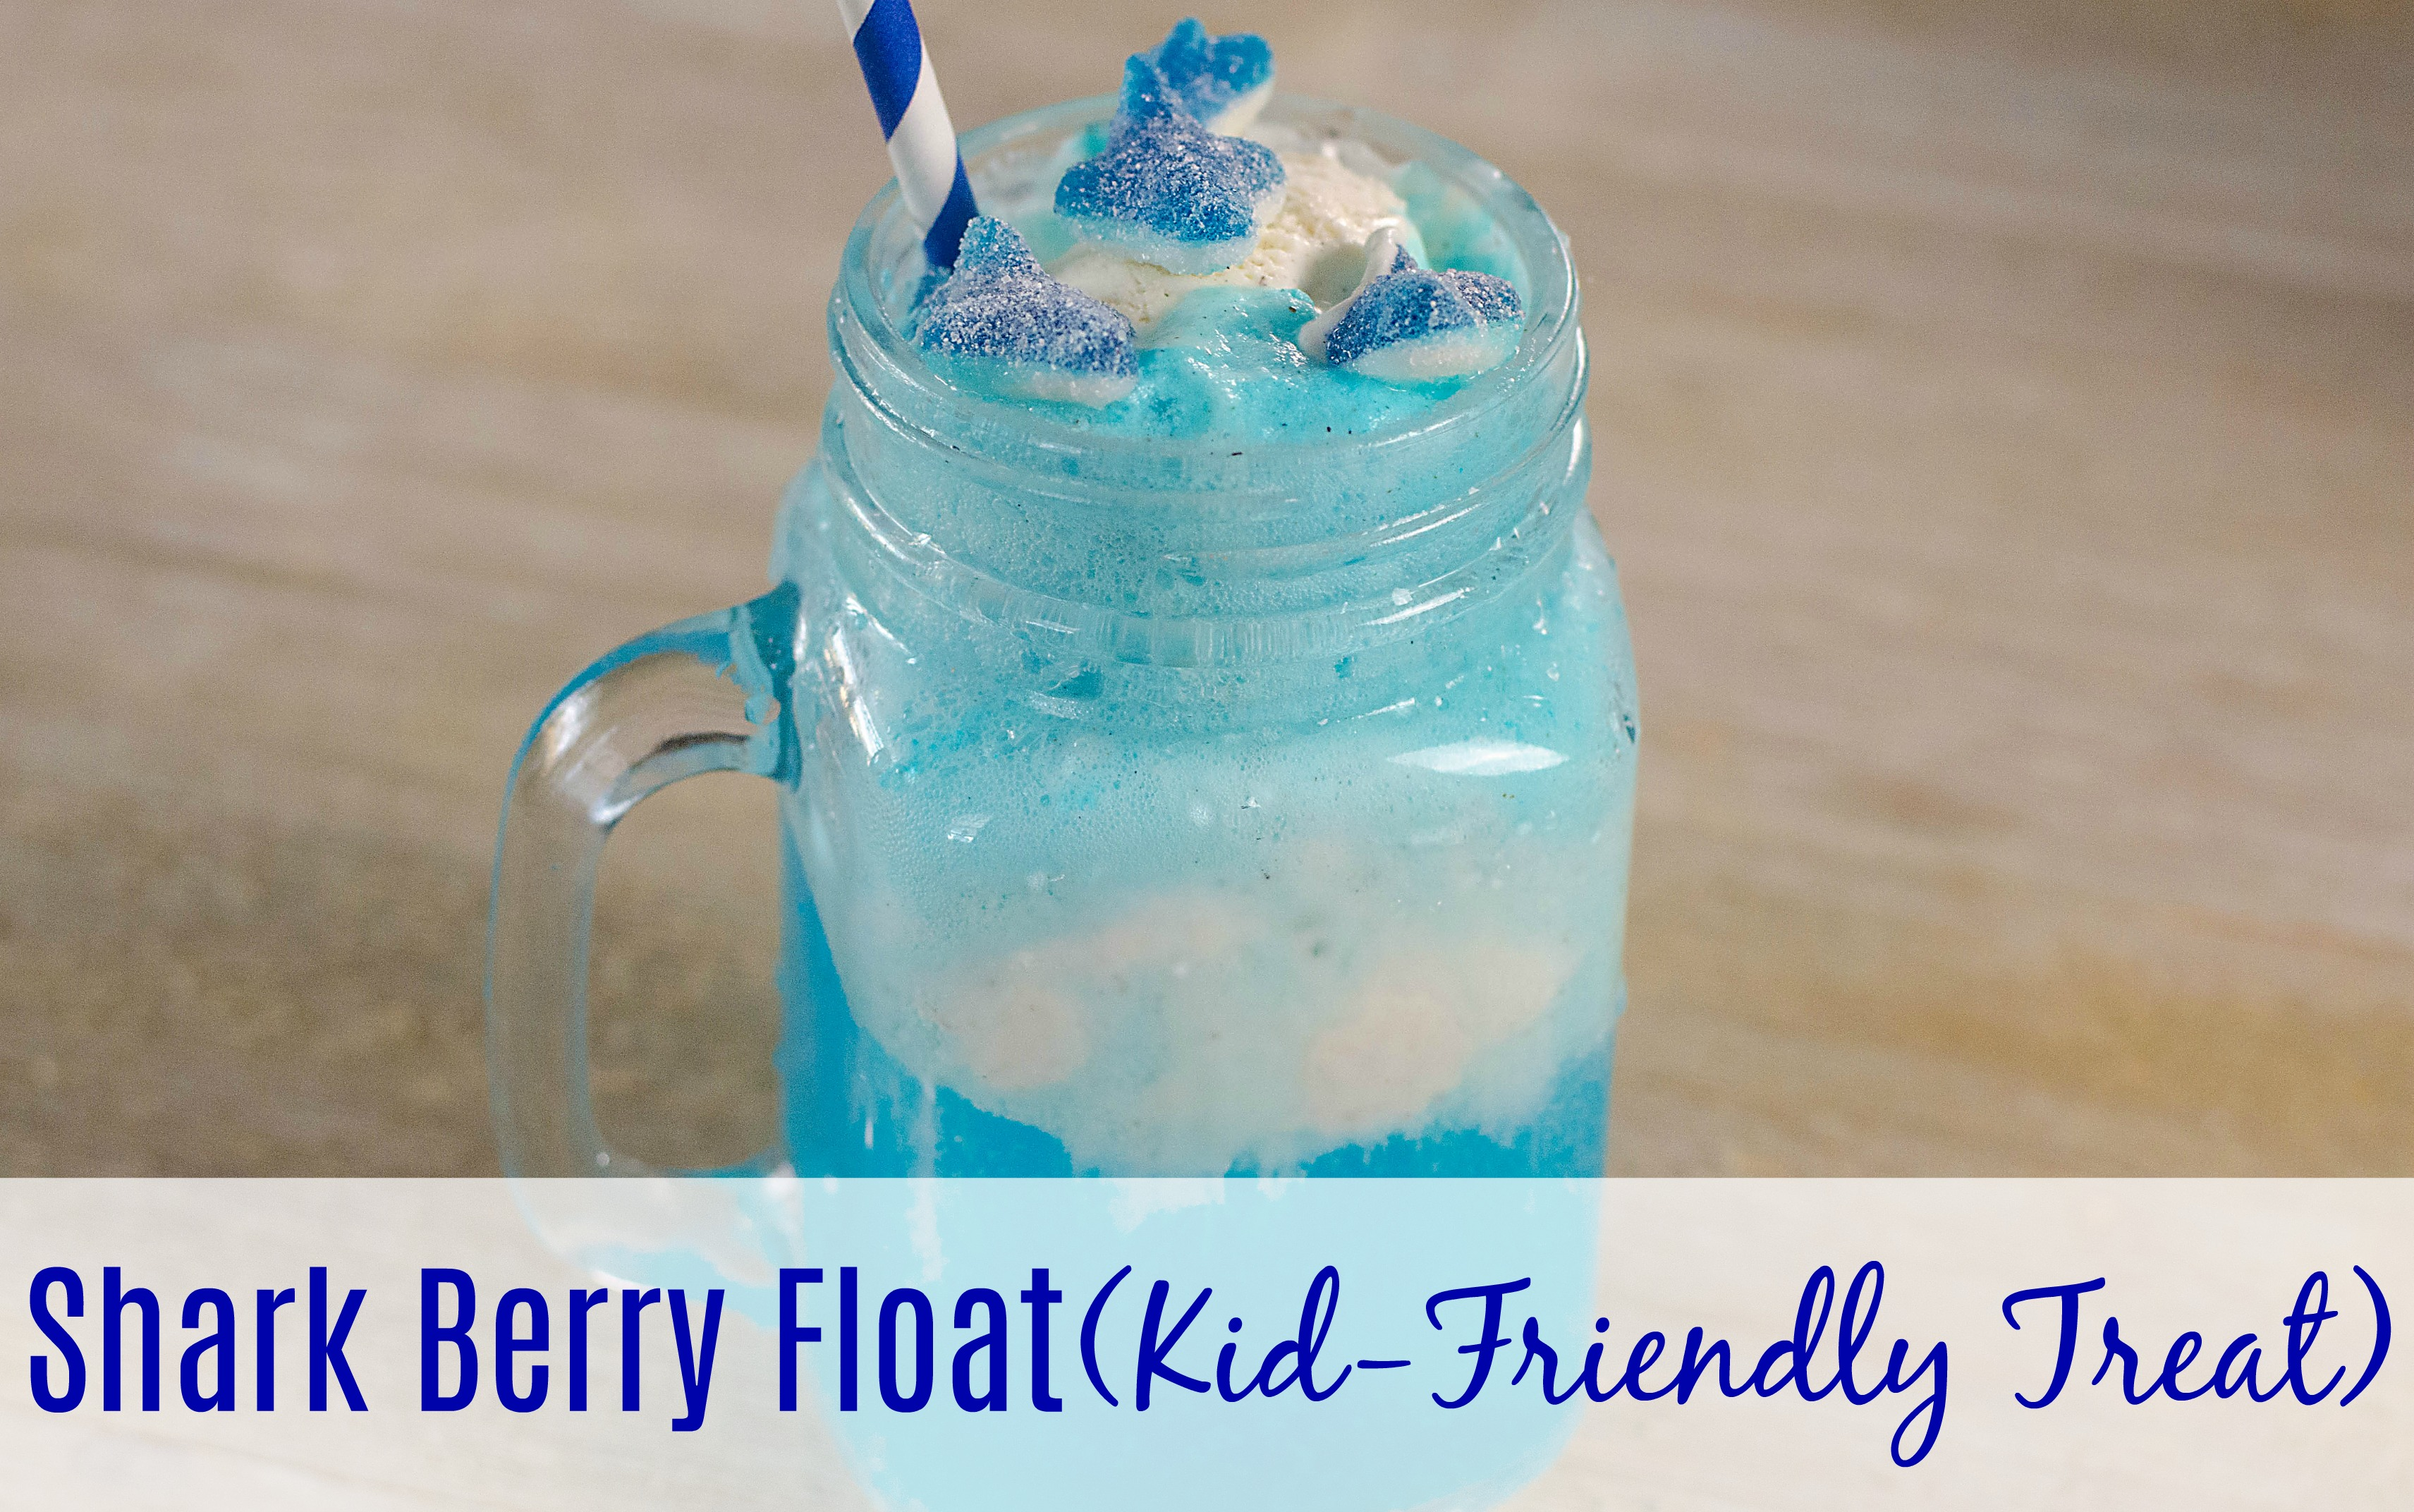 Shark Berry Float